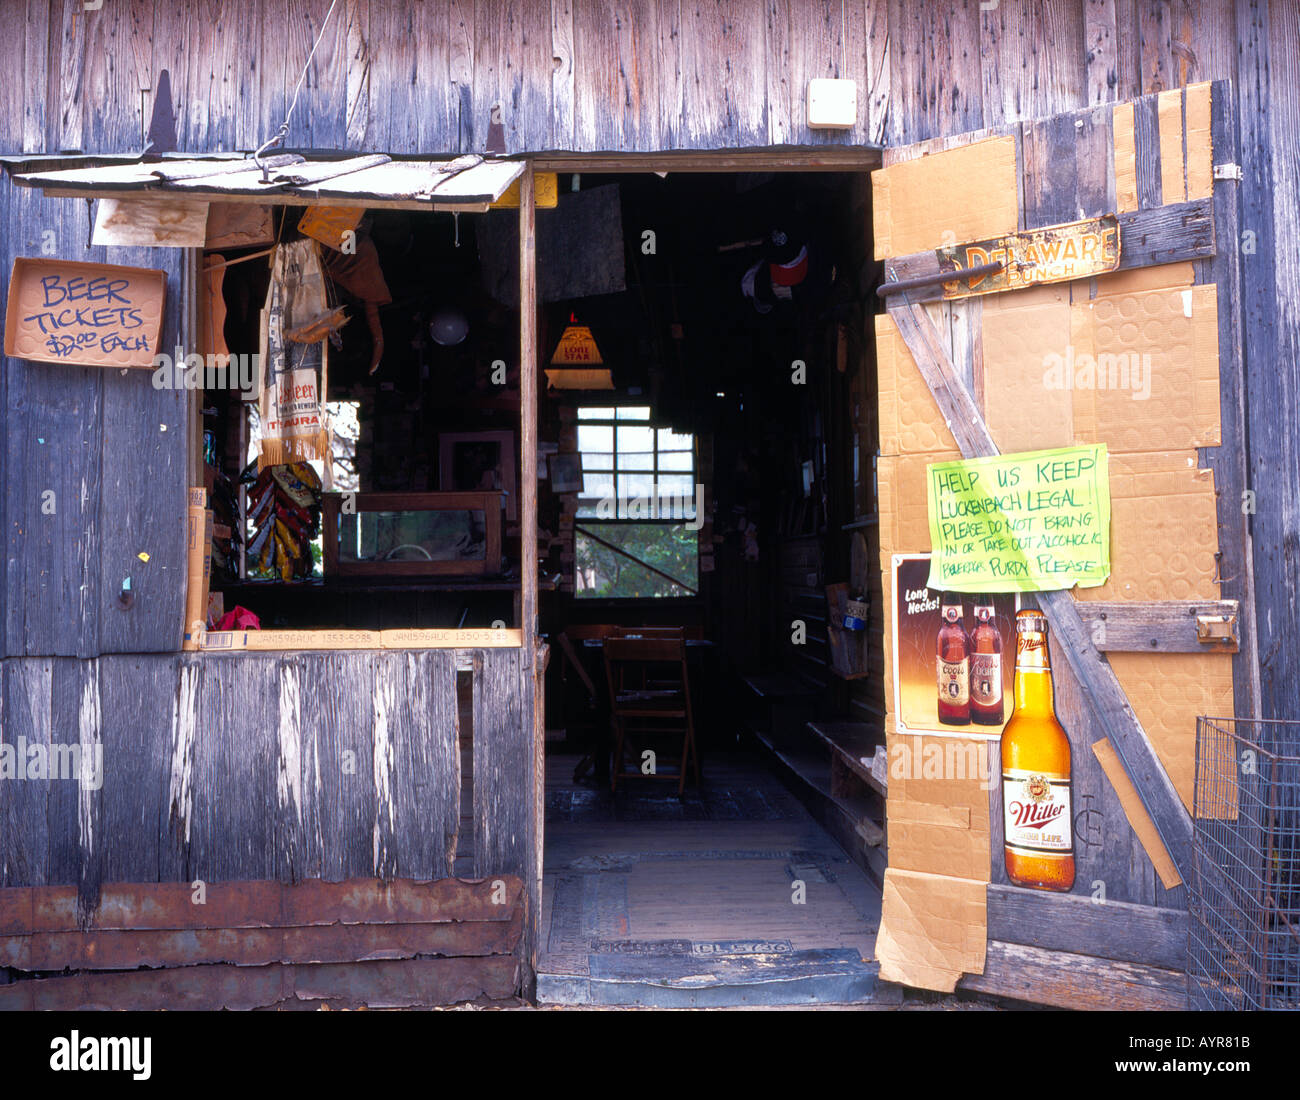 US Post Office Luckenbach Texas USA. Photo by Willy Matheisl - Stock Image